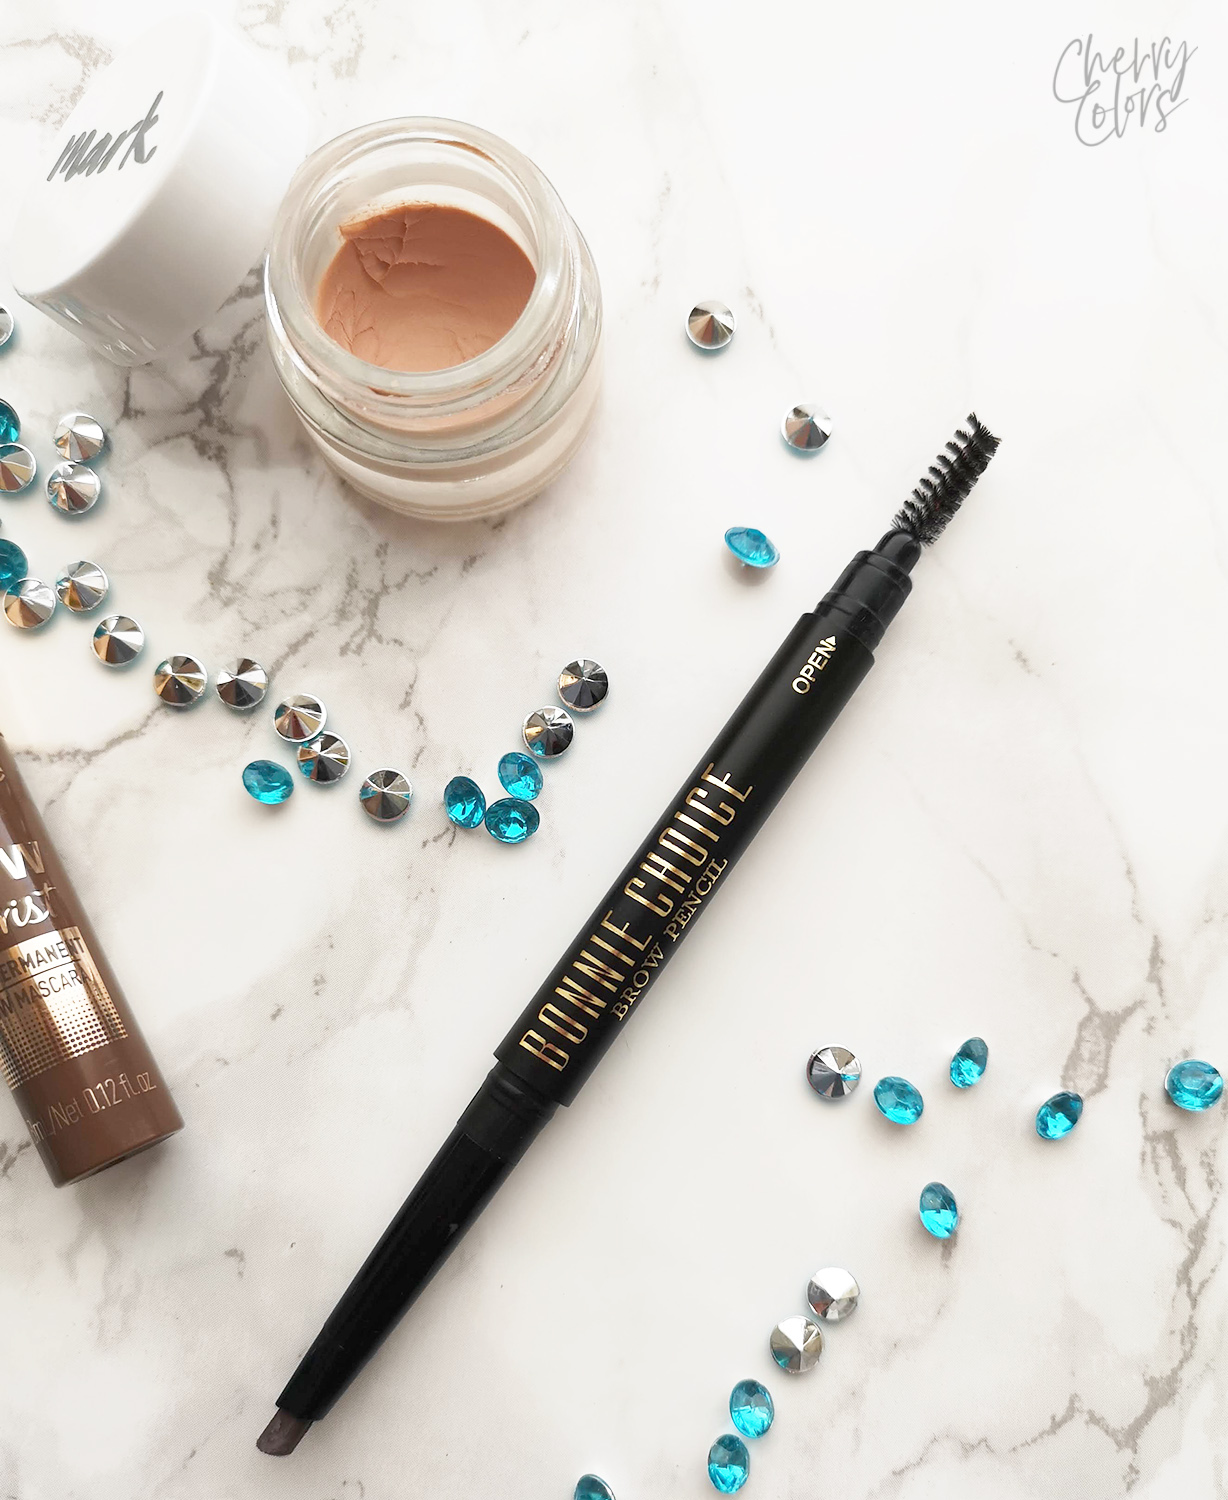 Bonnie Choice Eyebrow Pencil